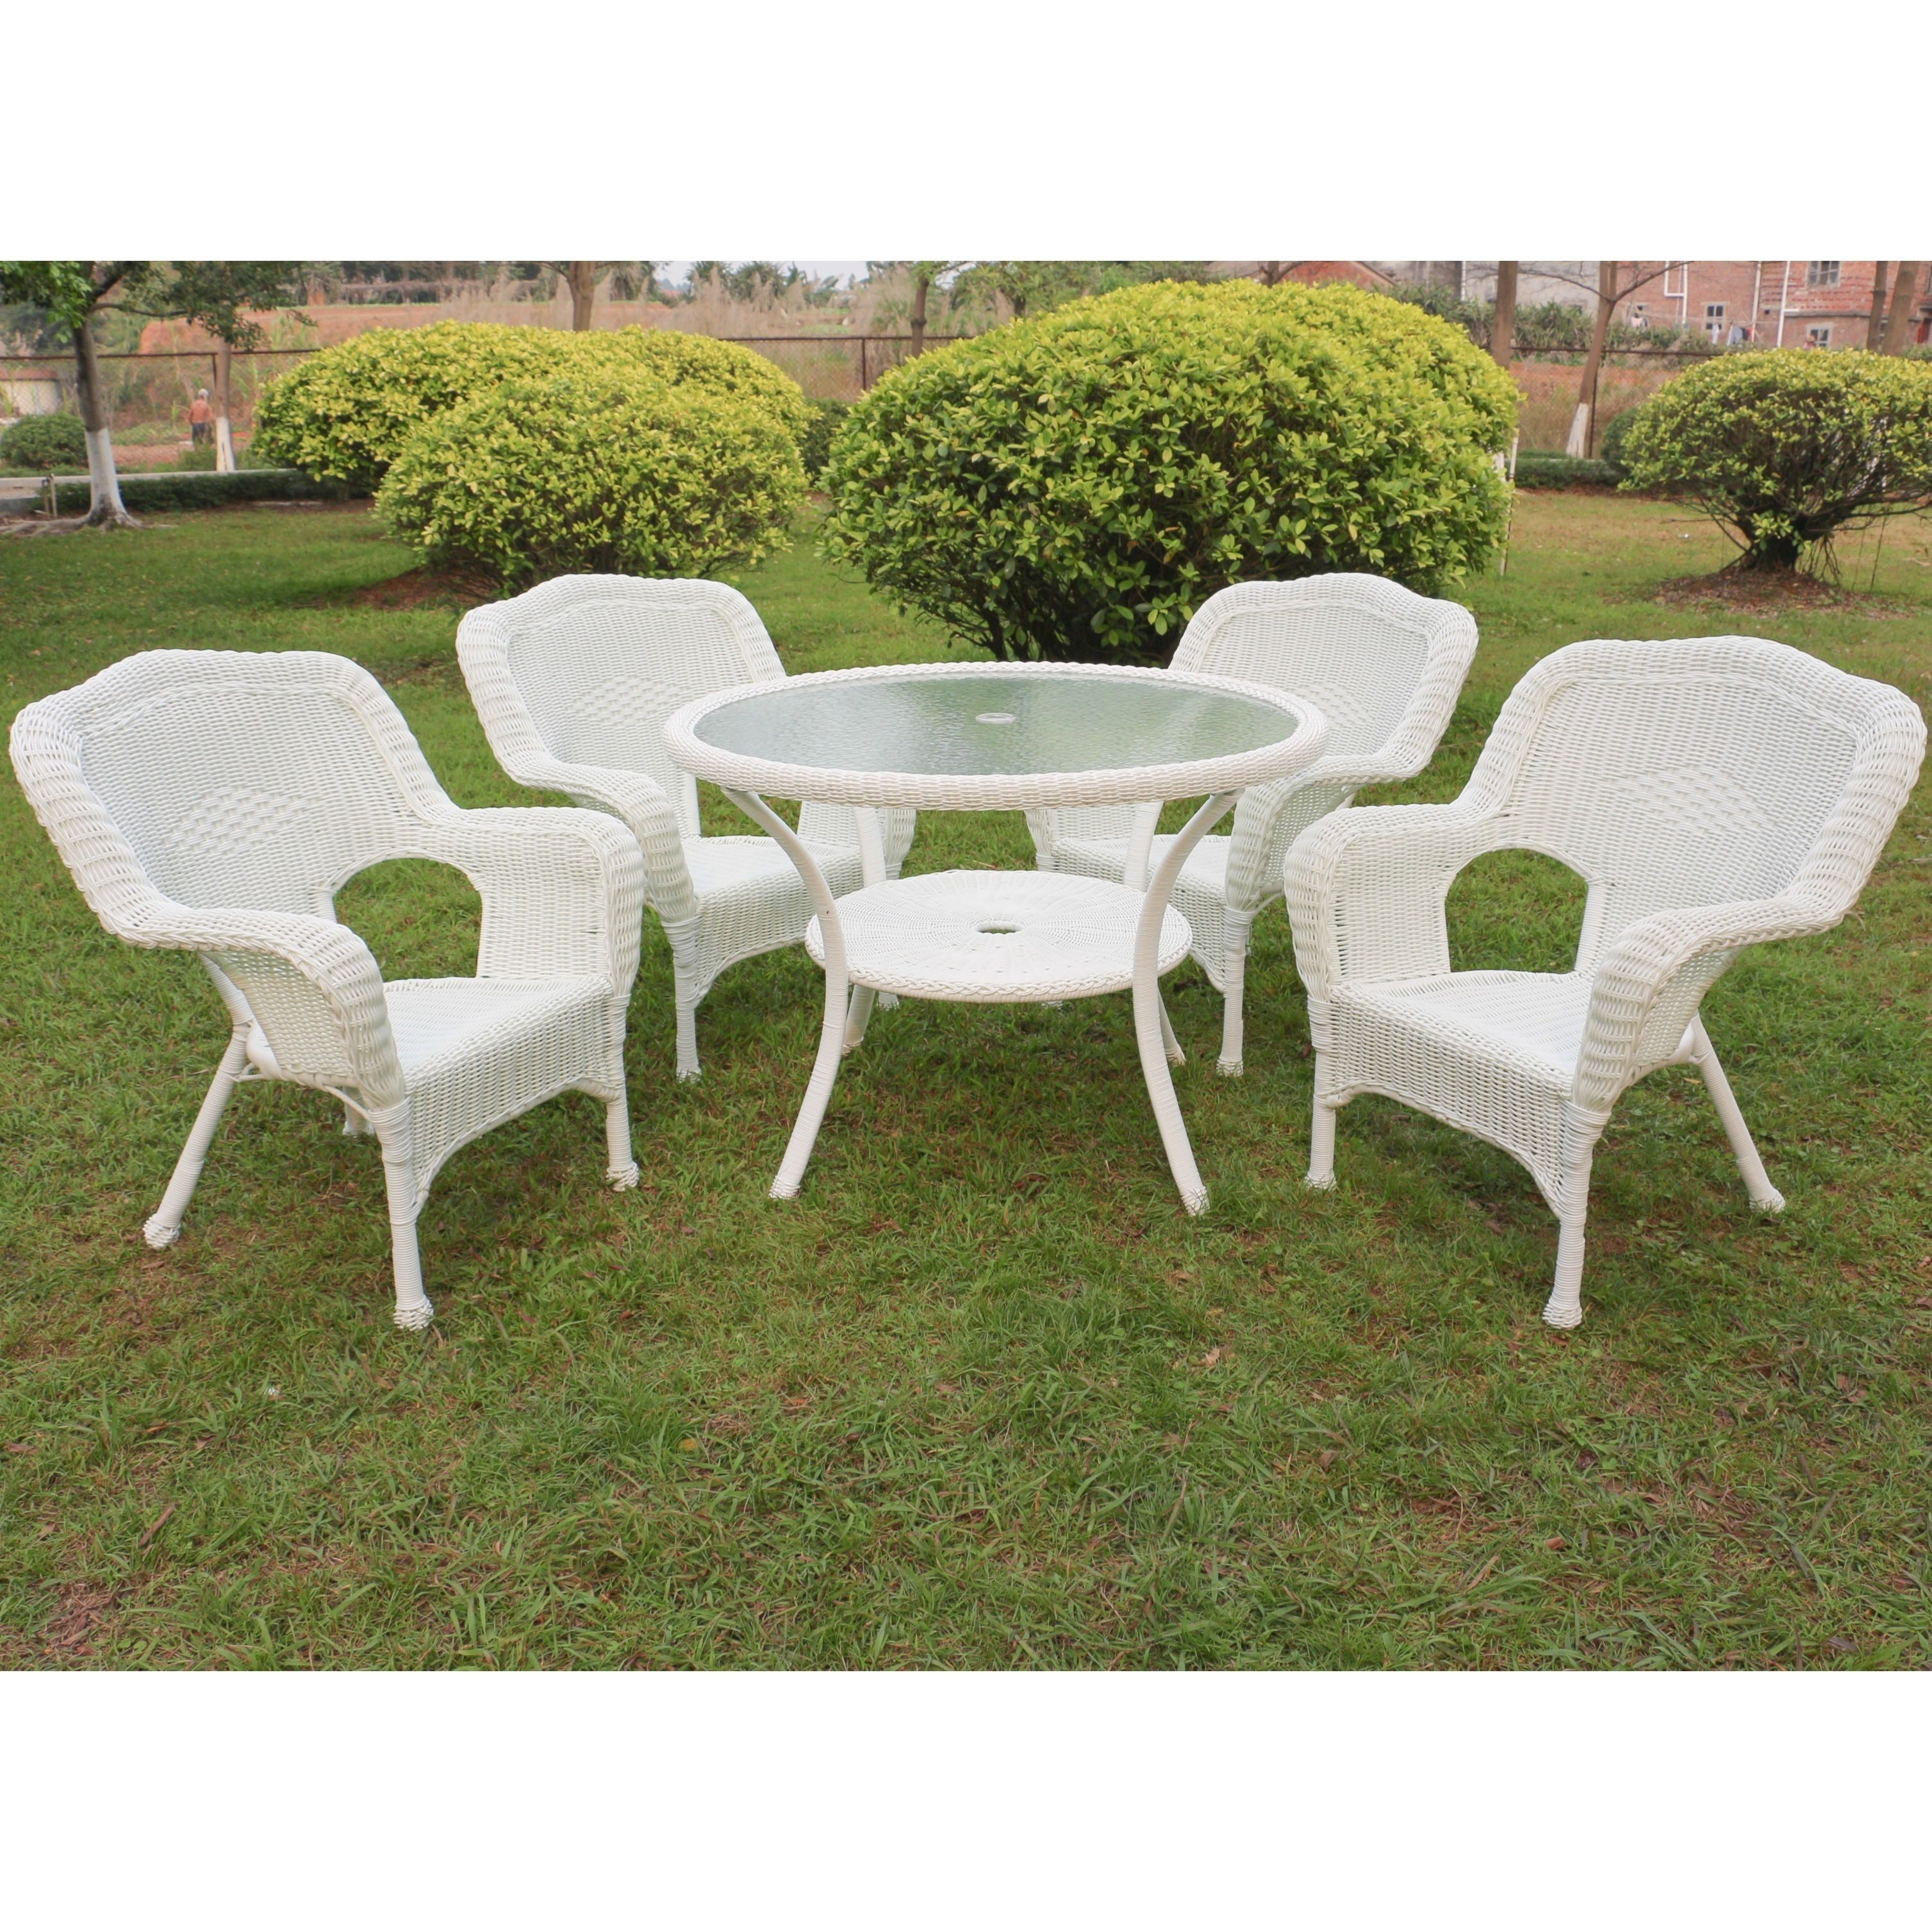 International Caravan Maui Resin Wick Outdoor Dining Set Of 5 White Size Piece Sets Patio Furniture